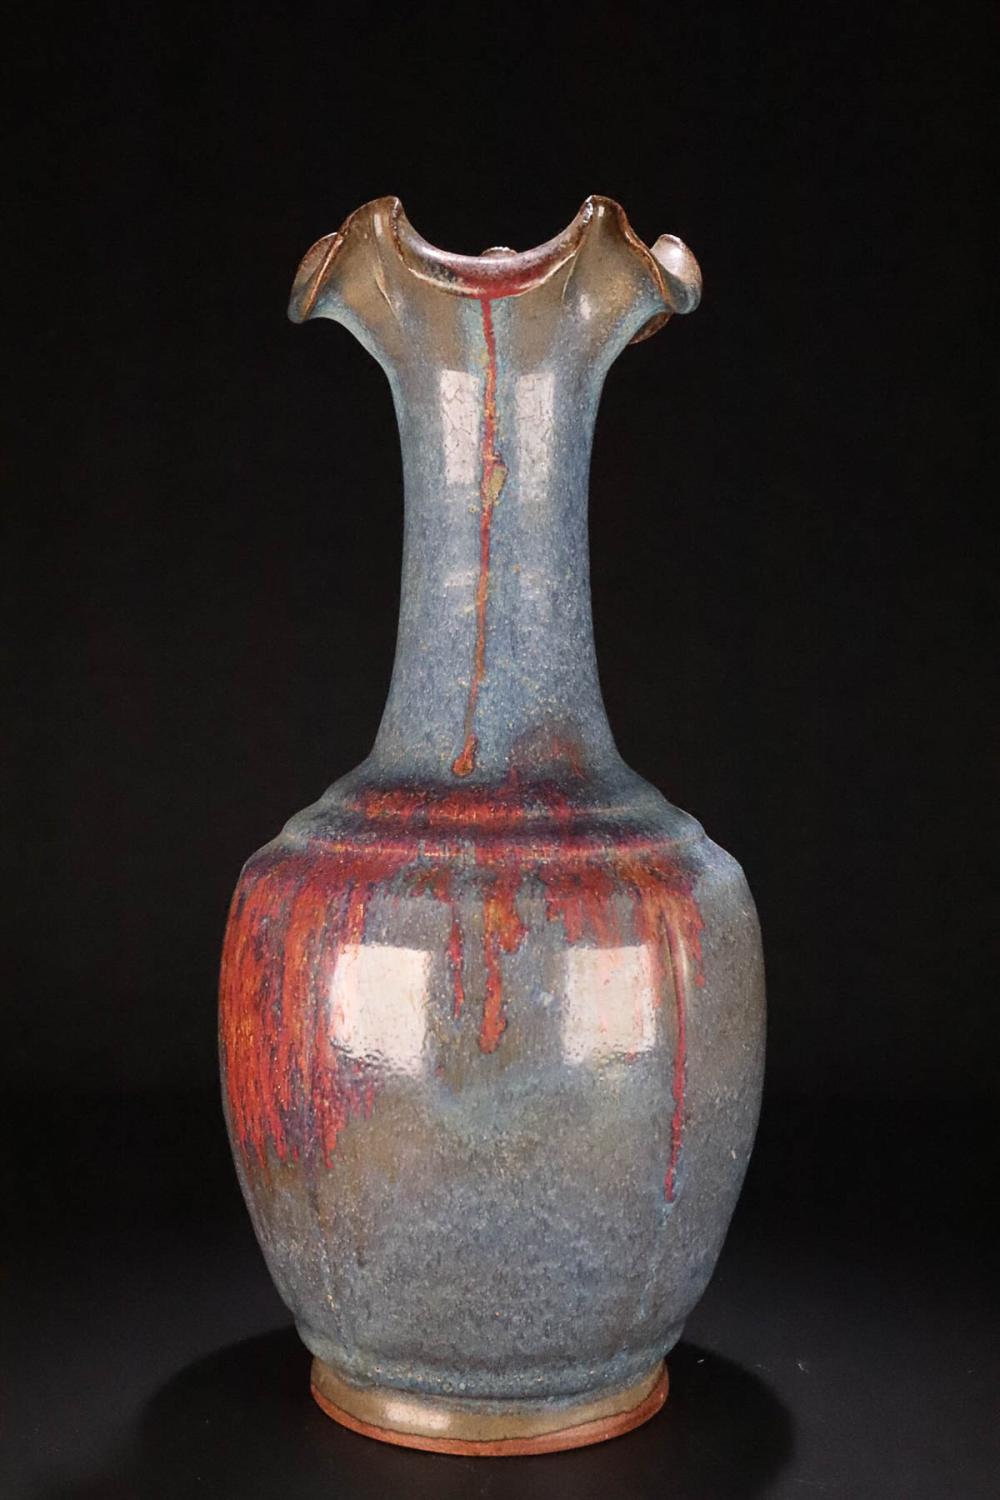 9-12TH CENTURY, A FLORAL MOUTH DESIGN JUN KILN SKY BLUE GLAZE VASE, SONG DYNASTY